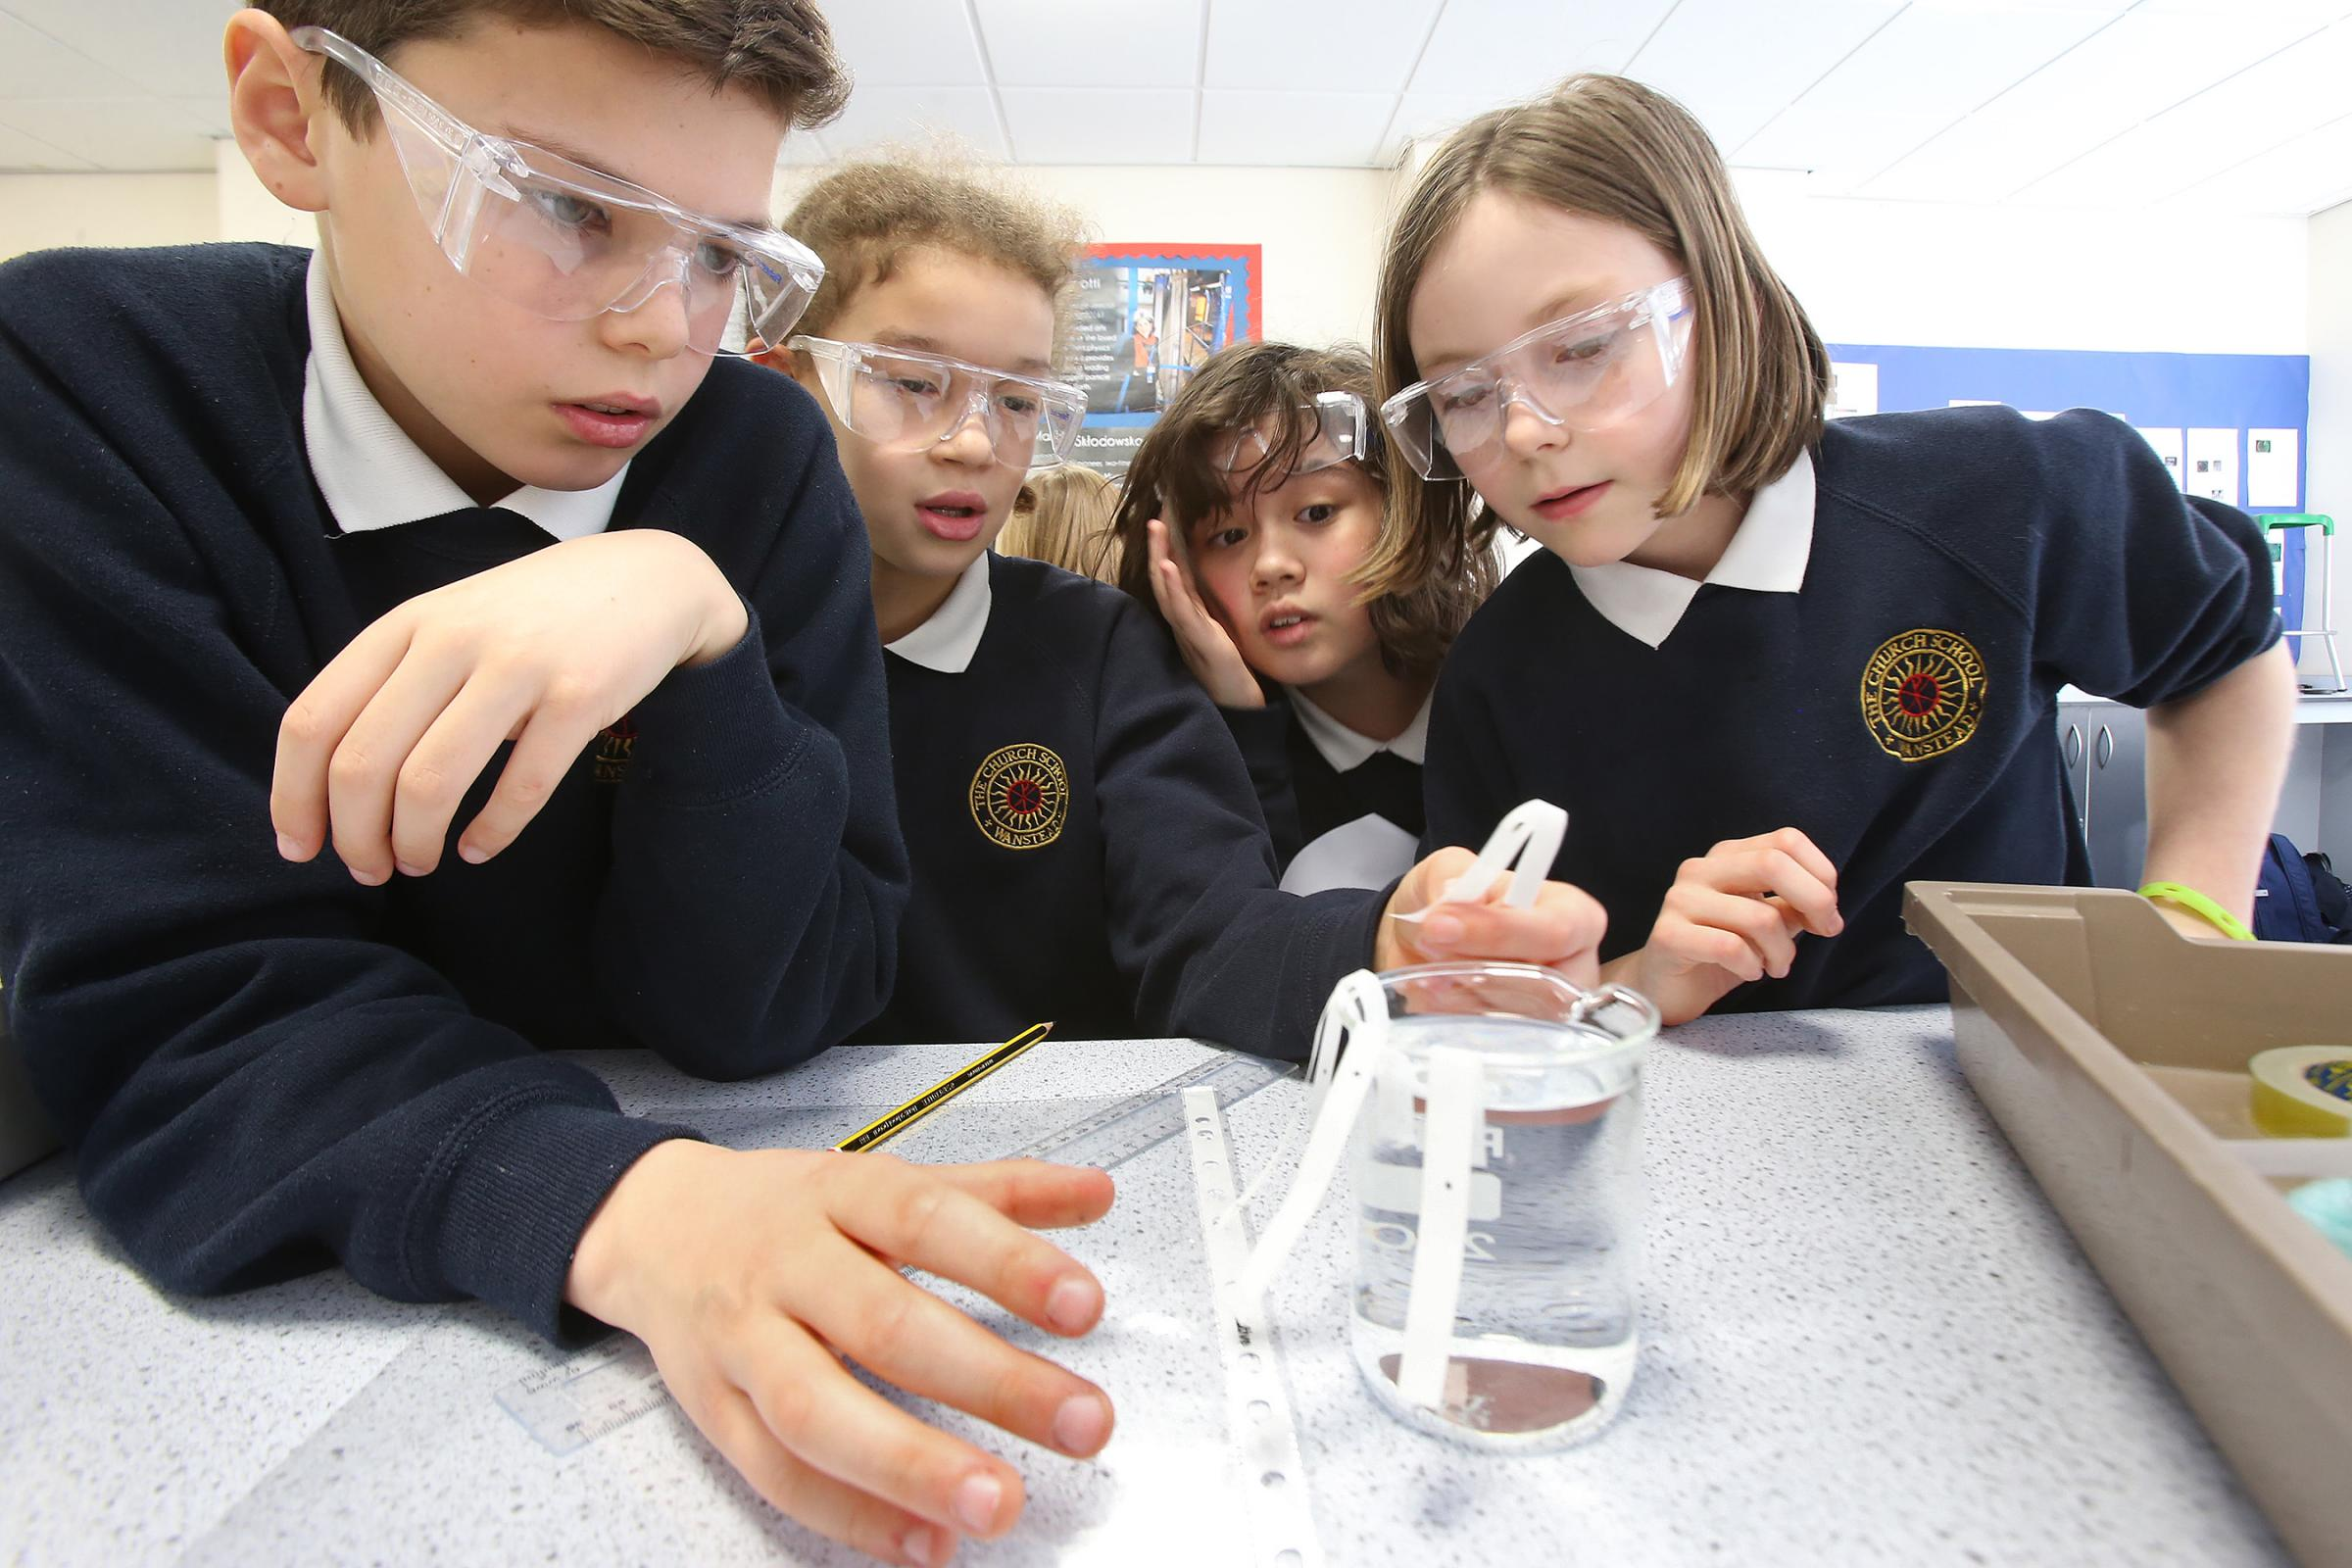 Leyton Sixth Form College will hold a 'Big Bang Fair' to encourage youngsters to study science-based subjects and careers.